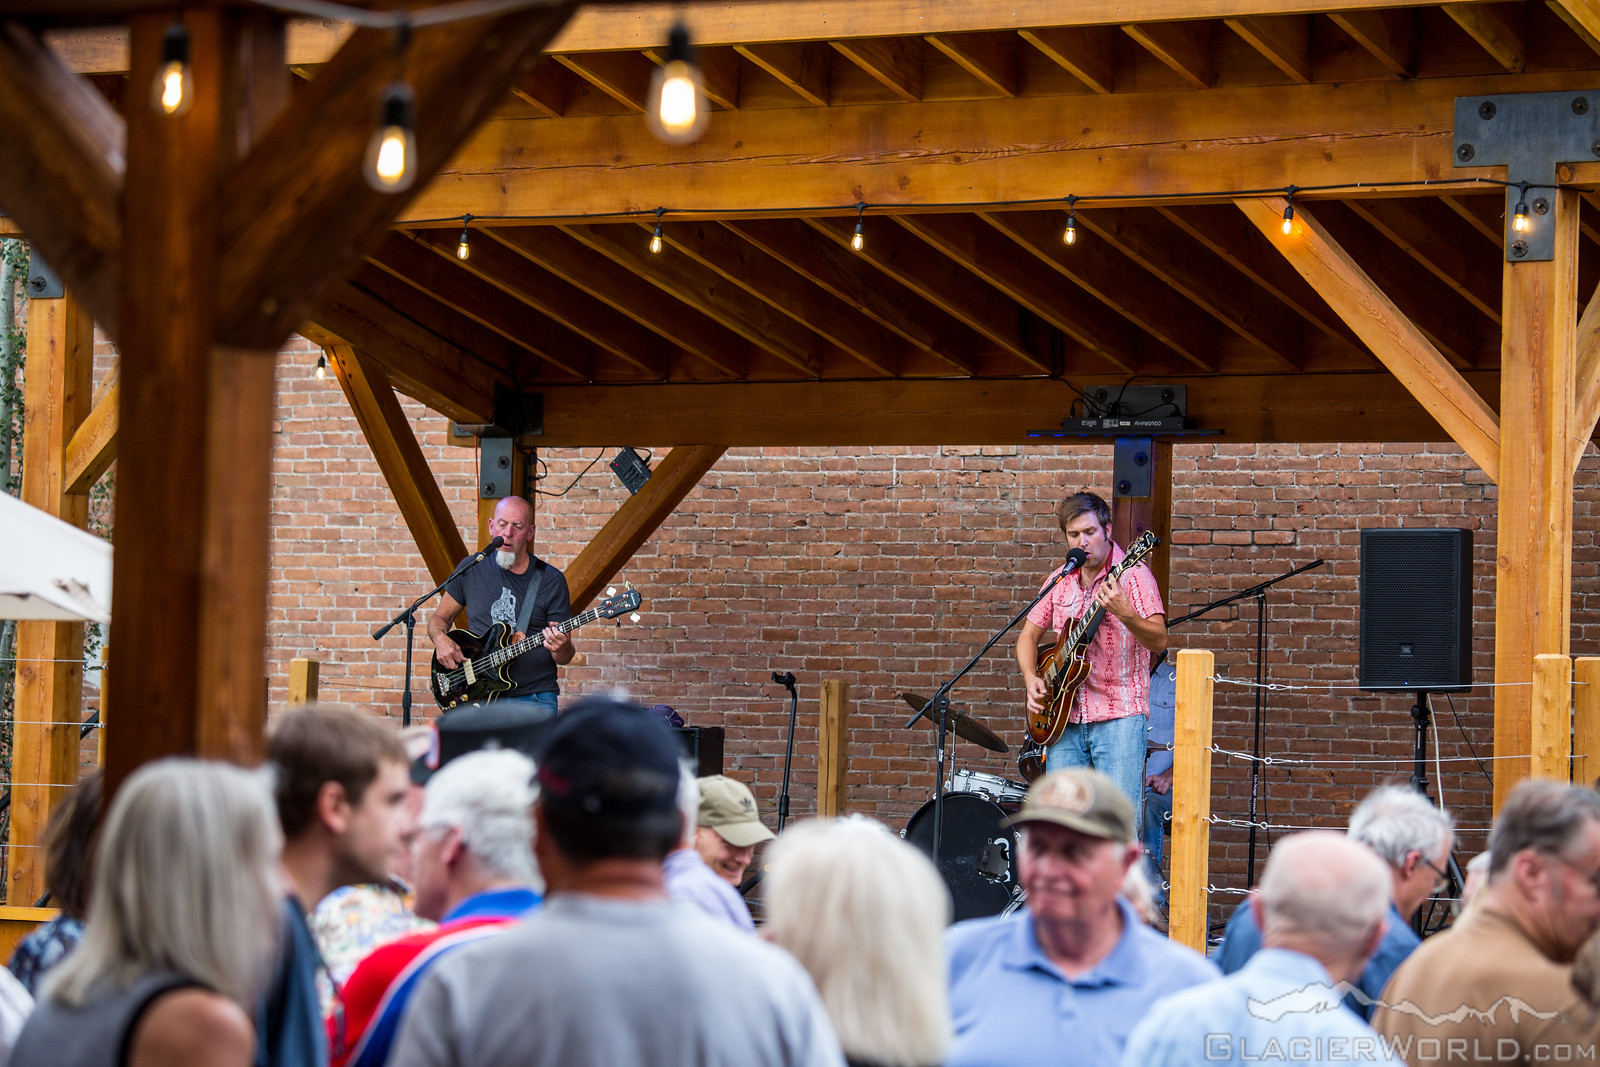 Live music - Come hear some of the best live music in the Flathead Valley, featuring music 5 days per week in the summer months and on weekends September-May.